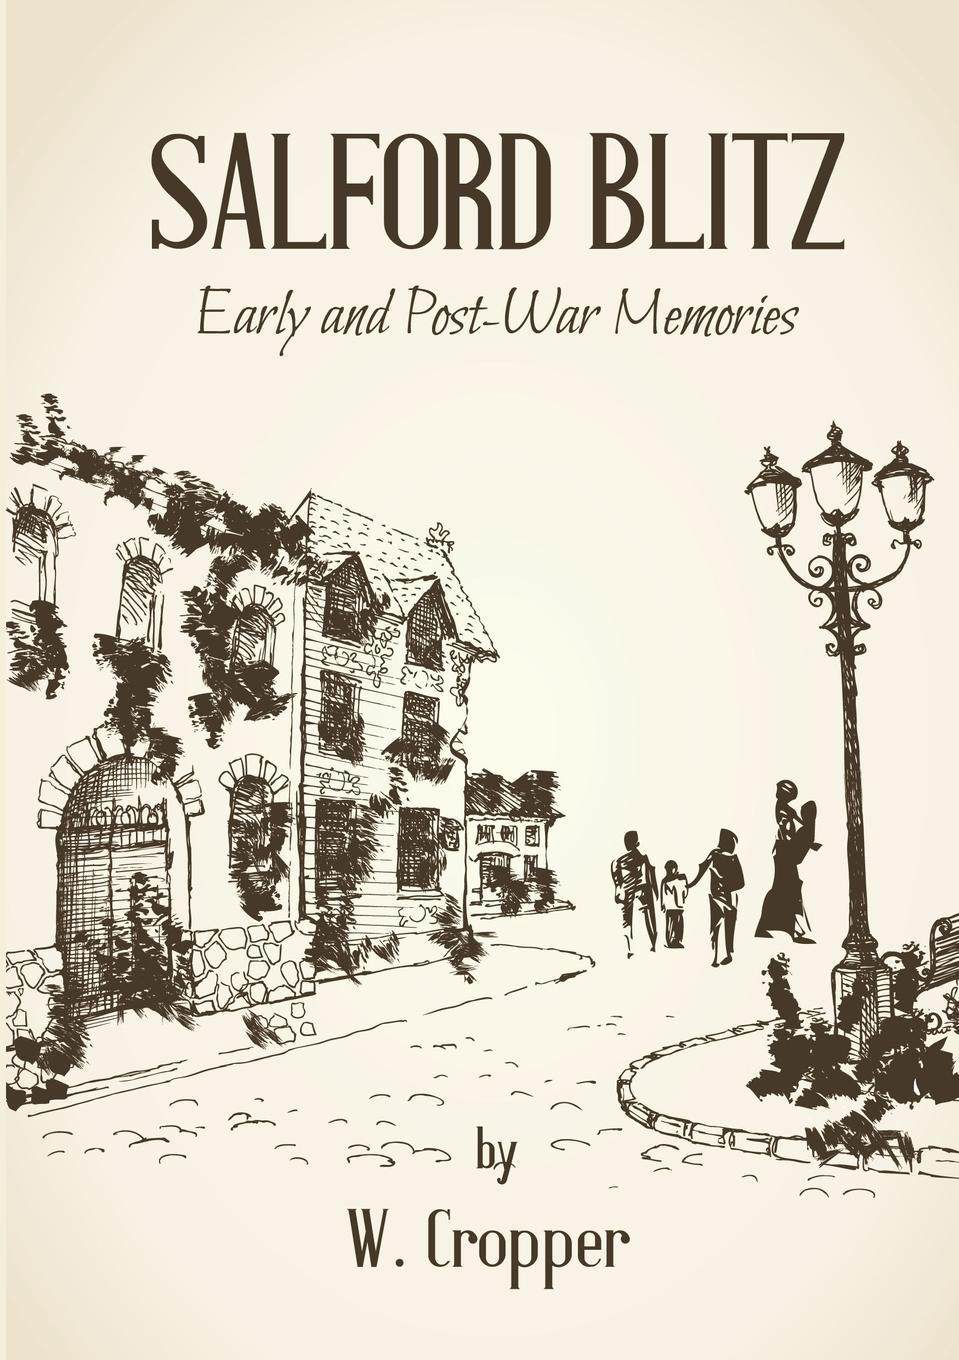 W. Cropper SALFORD BLITZ 1939 - 1945 AND OTHER STORIES